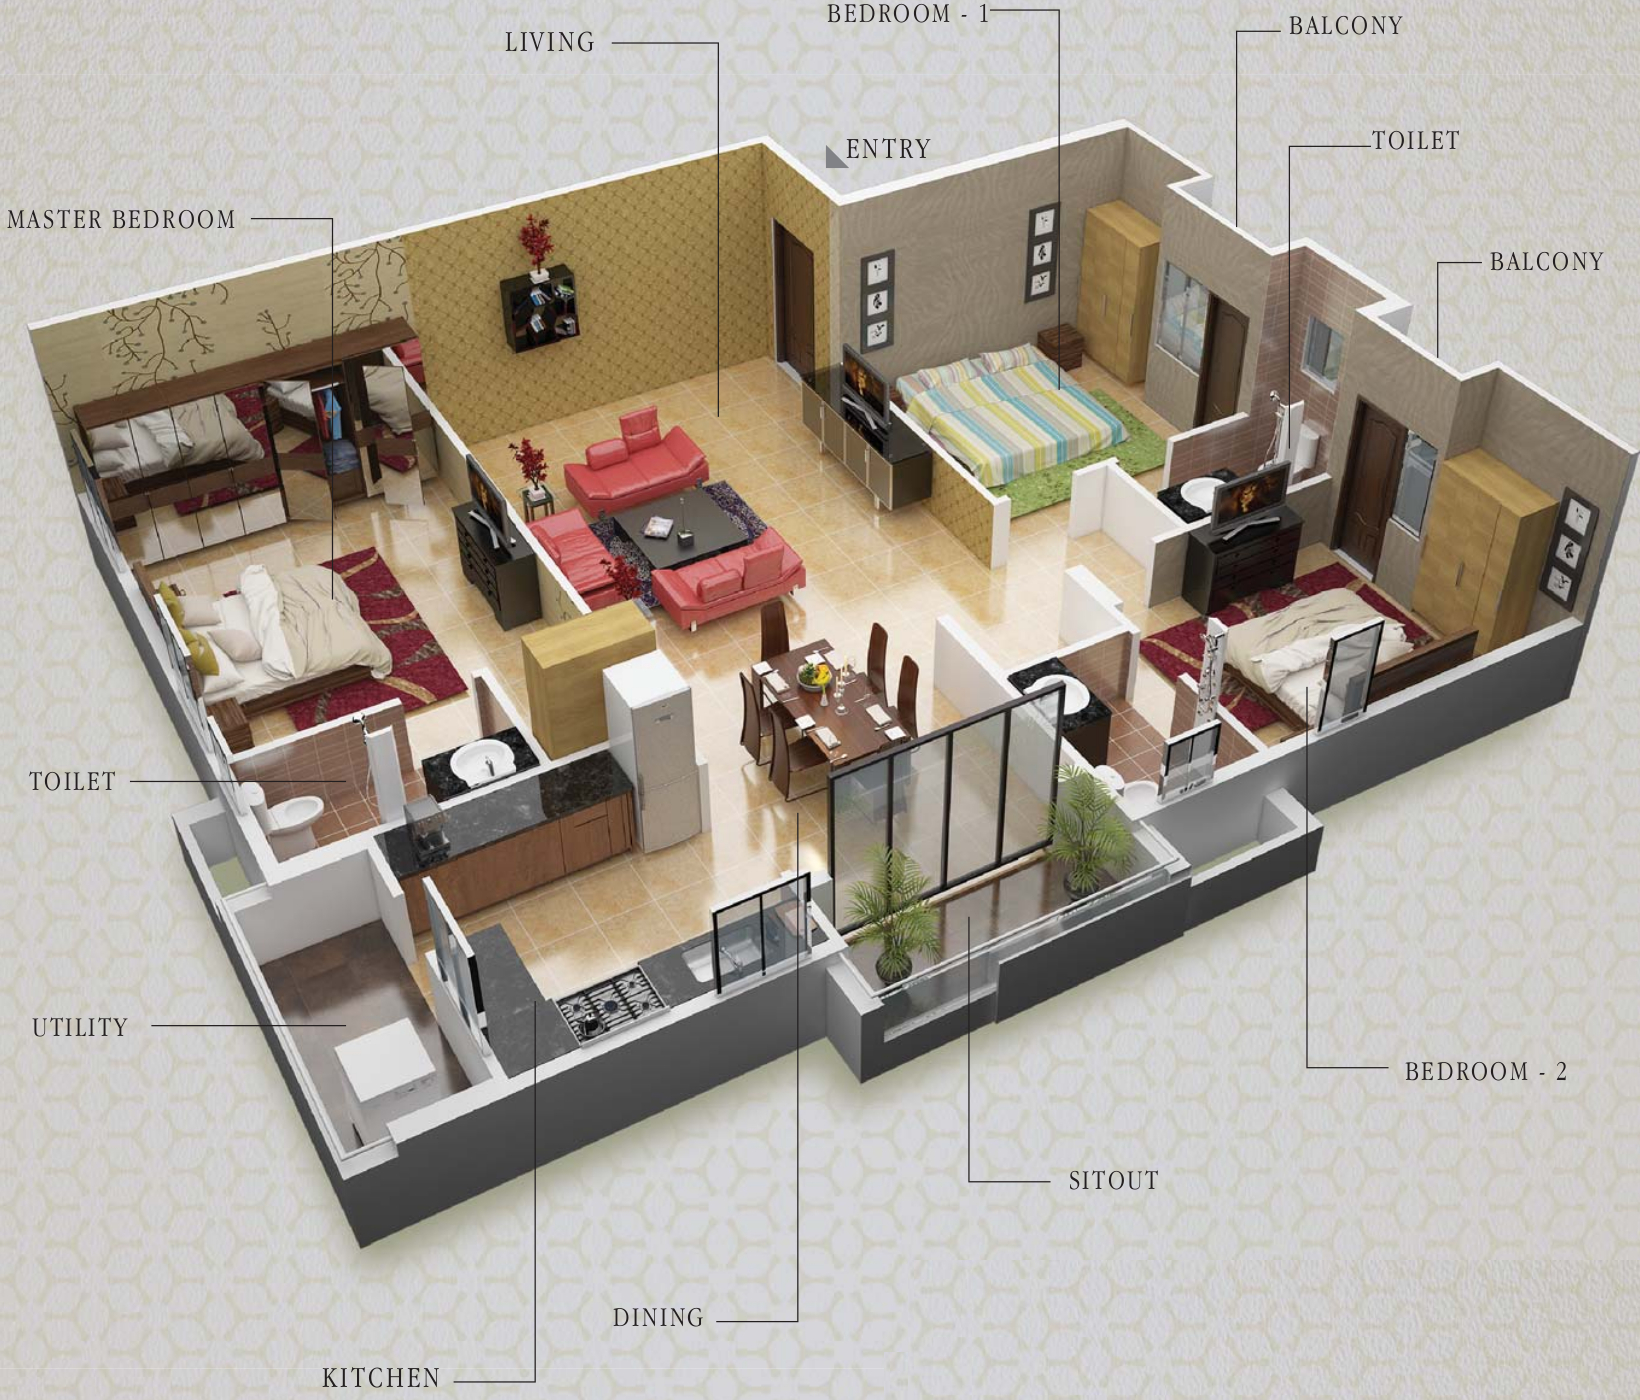 3 Bedroom House Plans North Indian Style Indian Home Design Plans